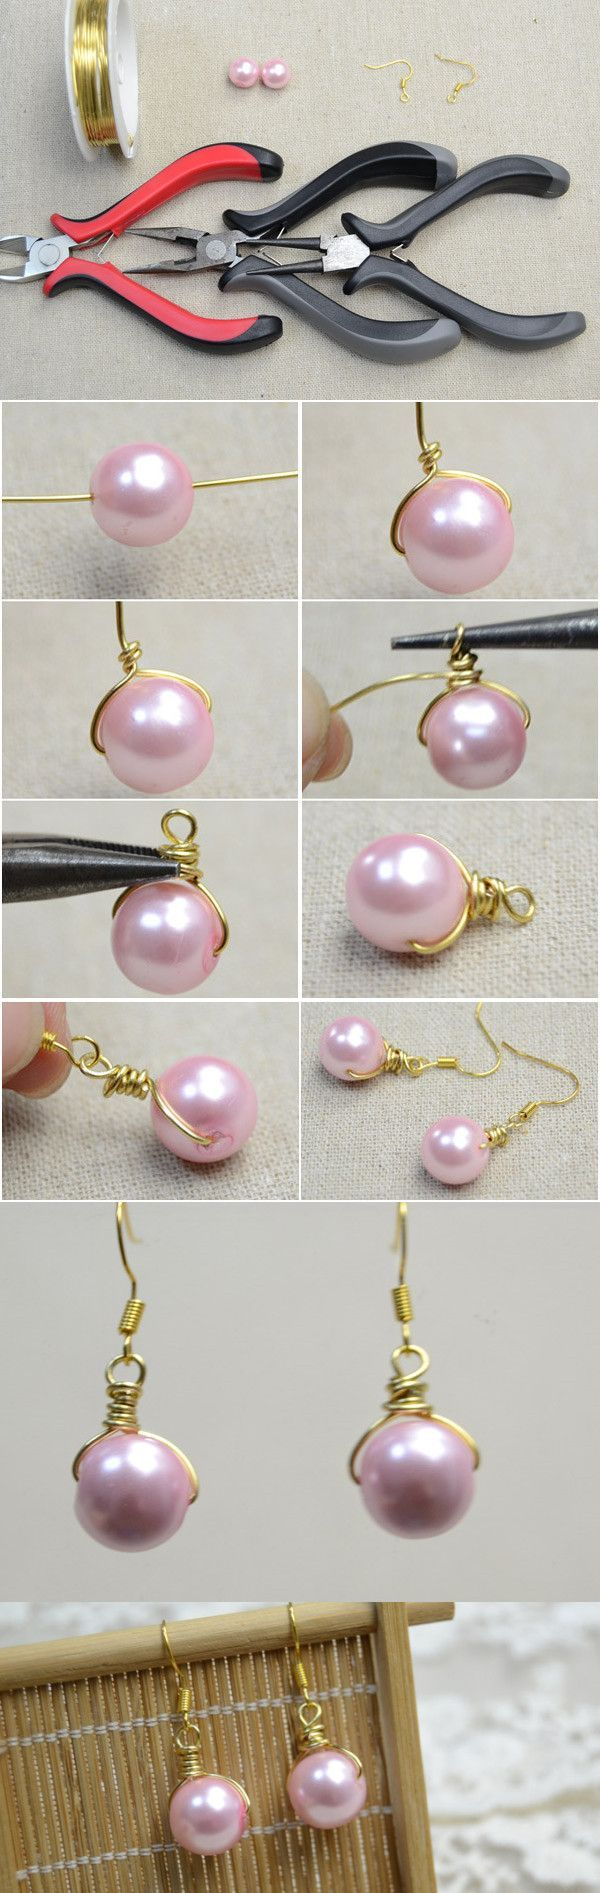 Photo of How to Make Pearl Drop Earrings With Pink Pearls and Golden Wires